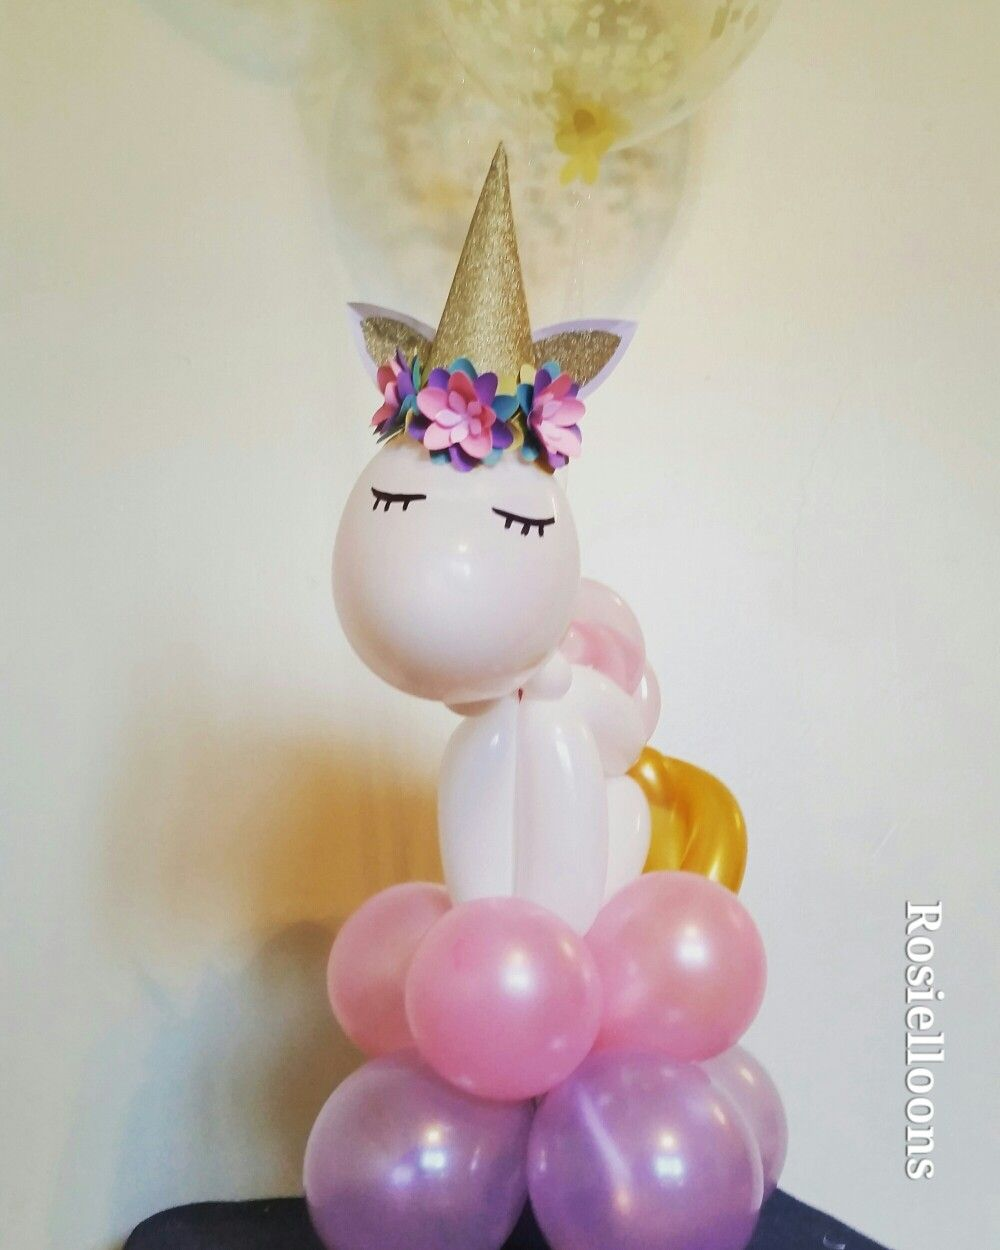 Unicorn Table Balloons Fiesta De Unicornios Piñata De